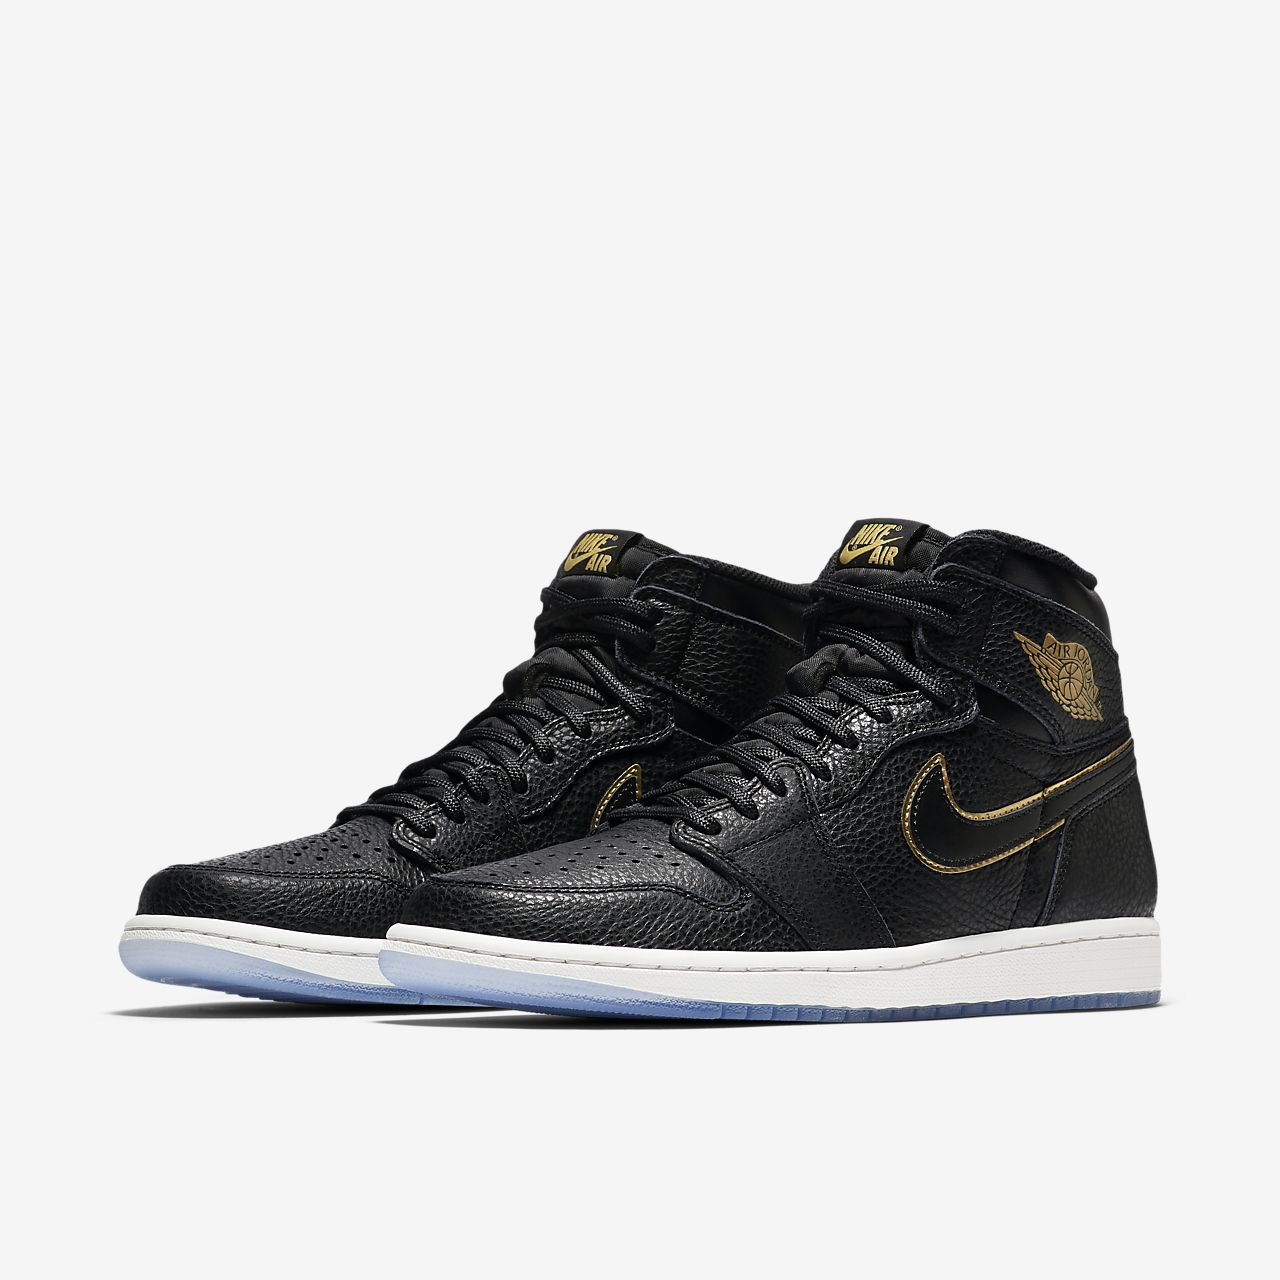 new styles cf773 e4f8b ... Air Jordan 1 Retro High OG Shoe